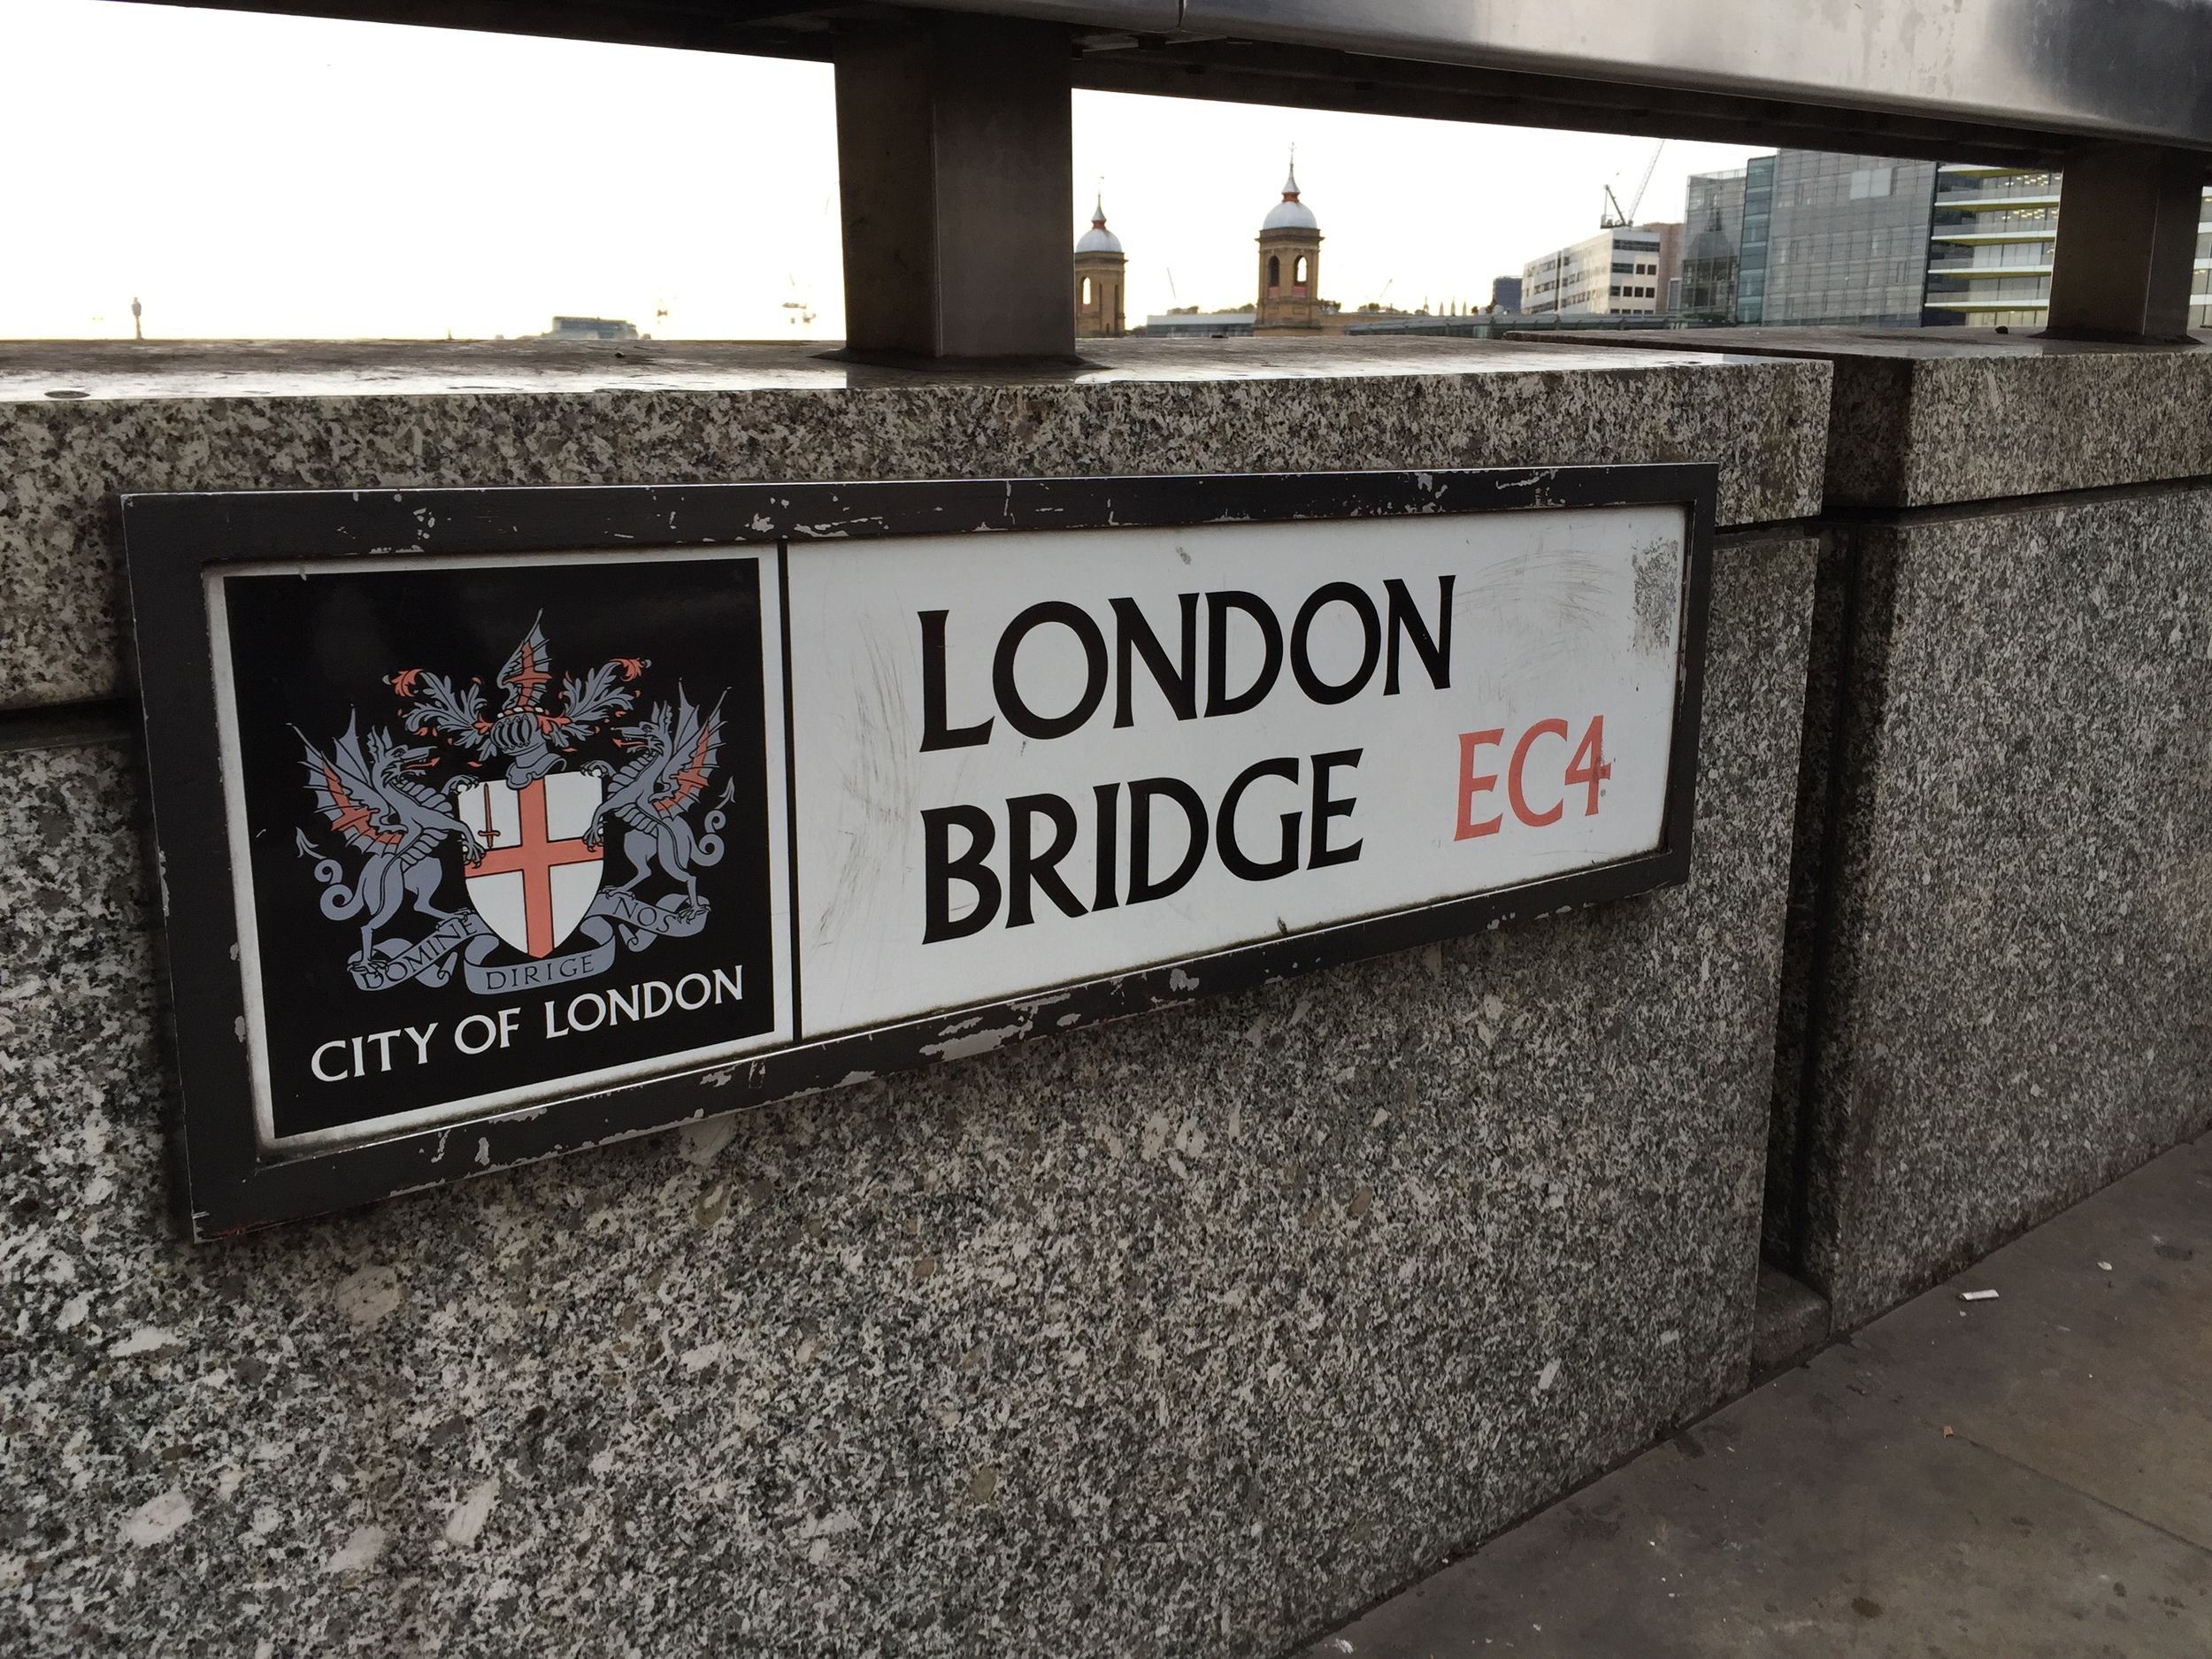 The London Bridge, which was not actually falling down.